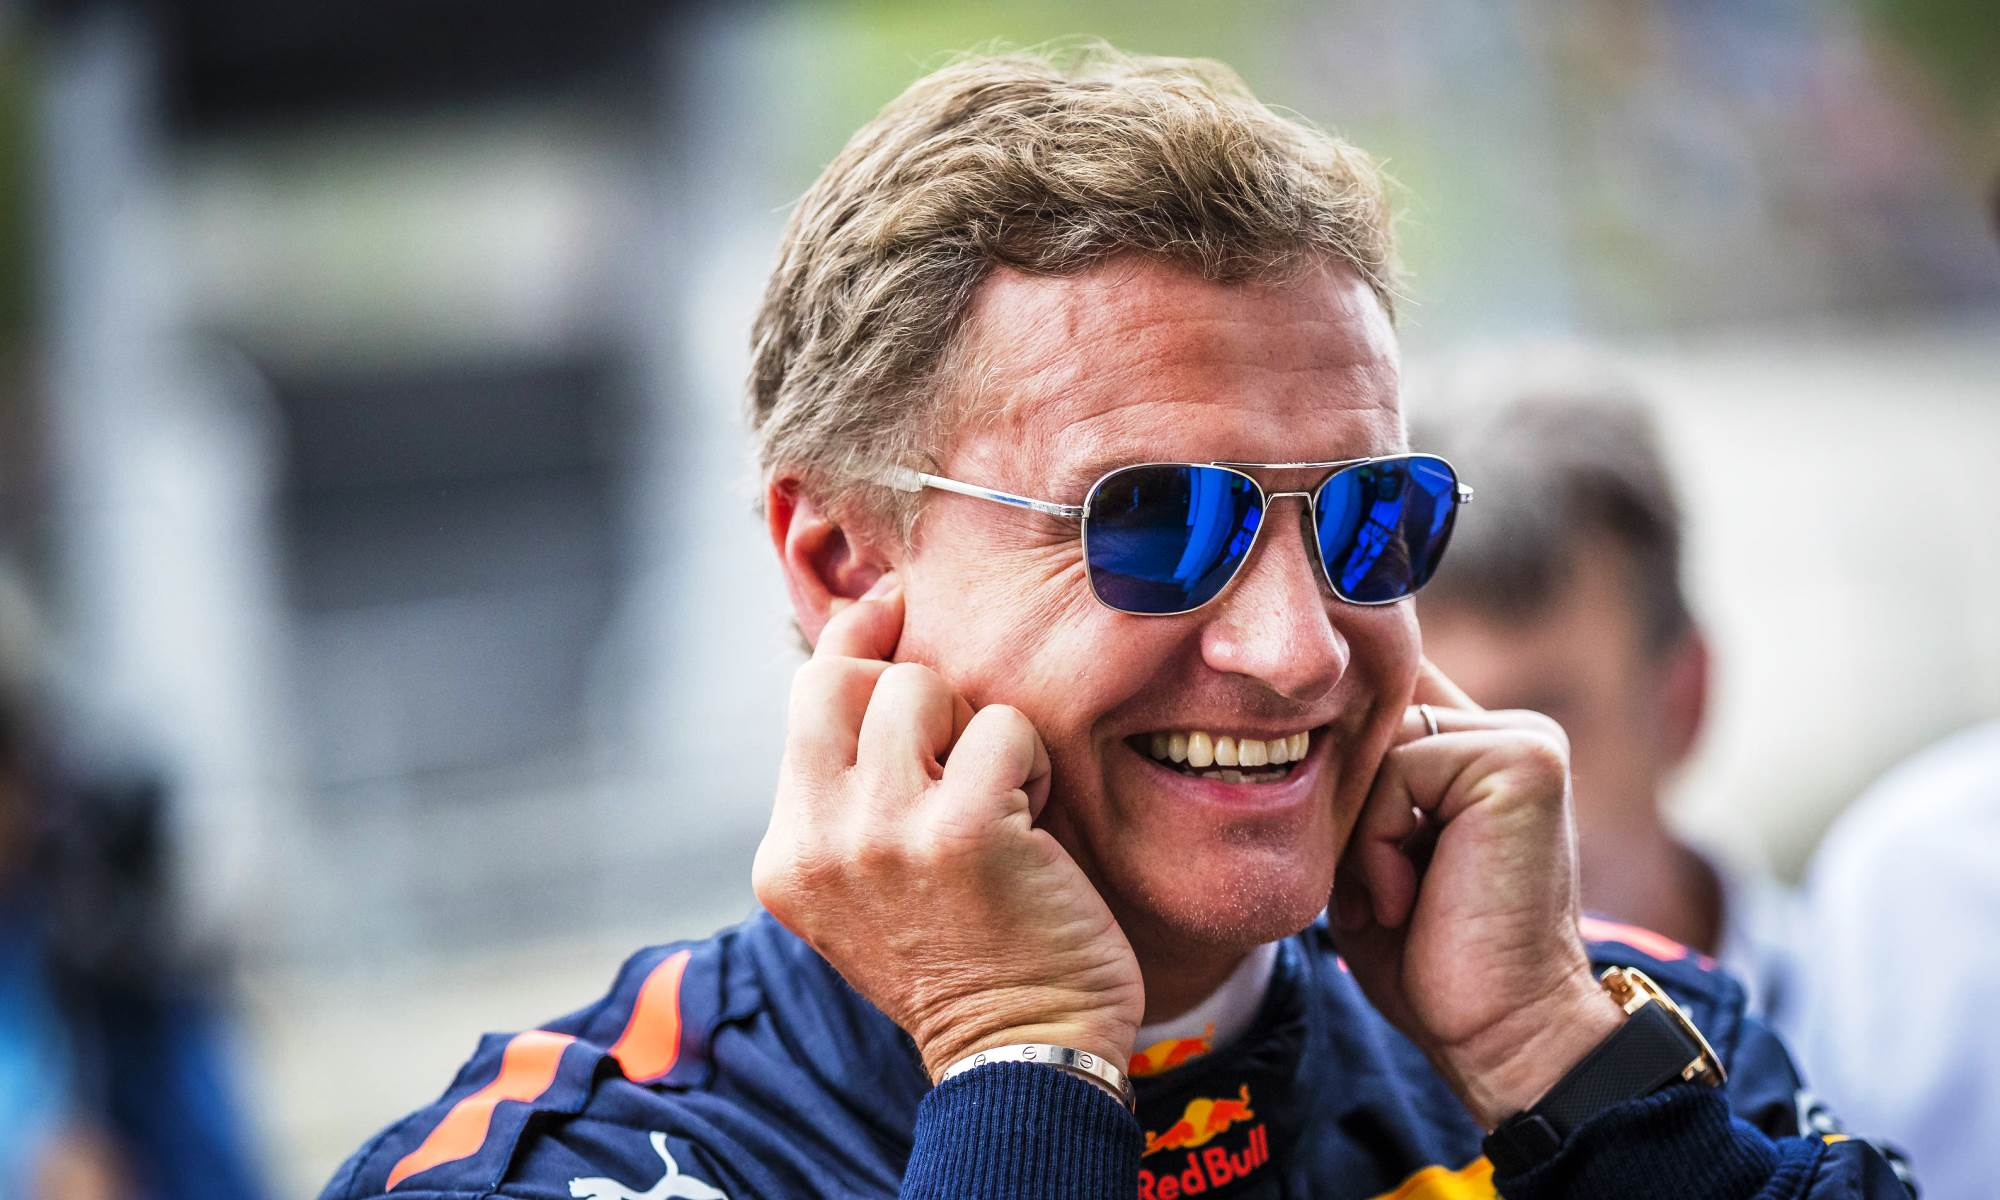 David Coulthard will drive the RBR racecar in Cape Town